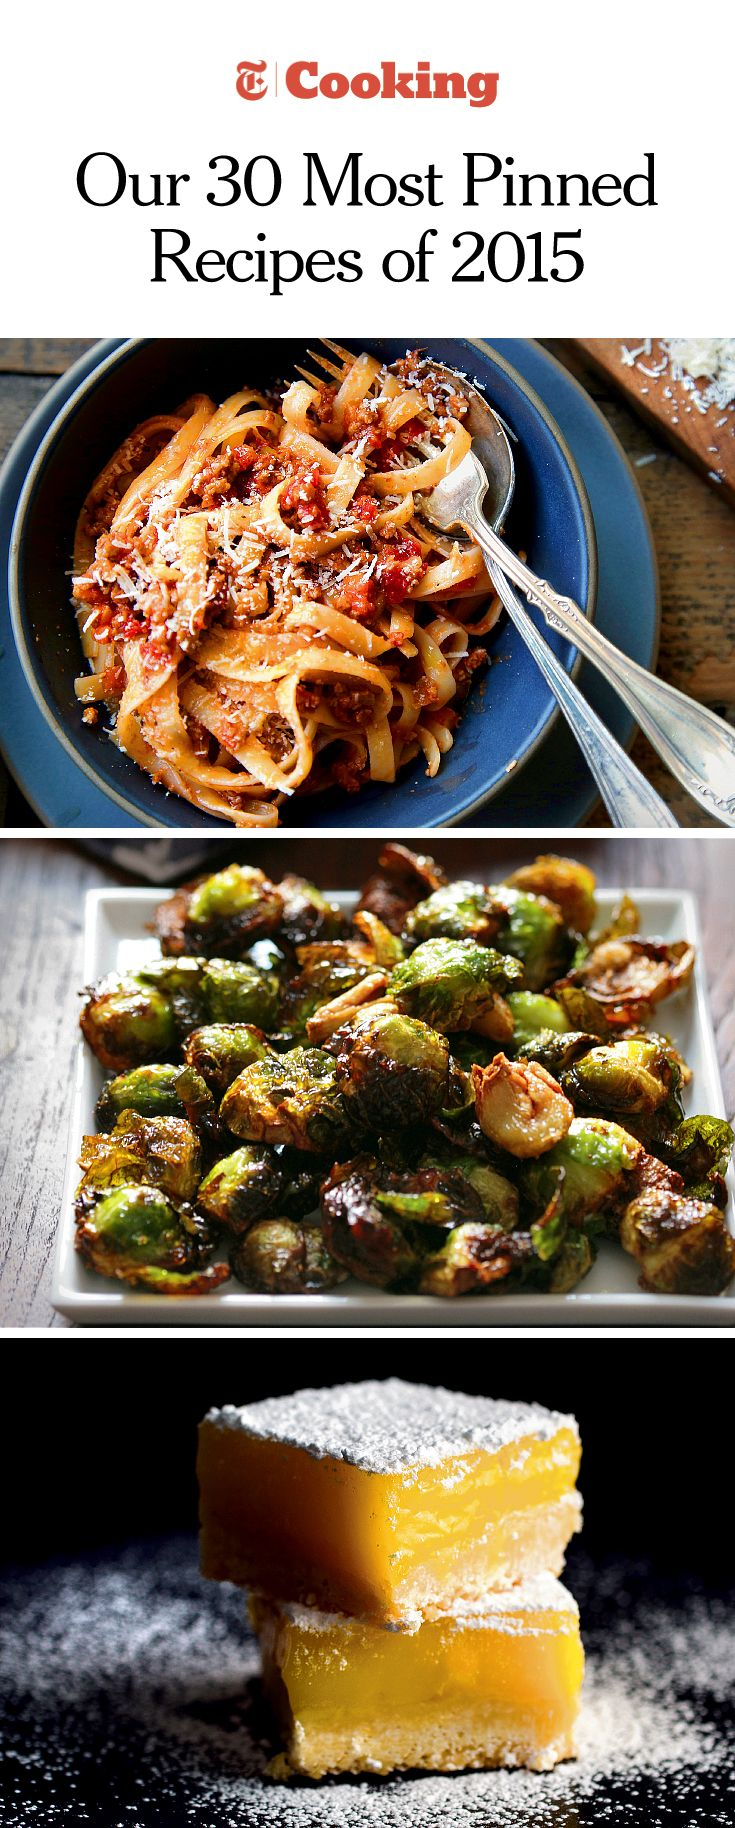 The recipes Pinterest users saved most from NYTCooking.com, including Marcella Hazan's Bolognese, roasted Brussels sprouts with garlic and lemon bars. (Photos, from top: Jim Wilson/NYT and Andrew Scrivani for NYT)